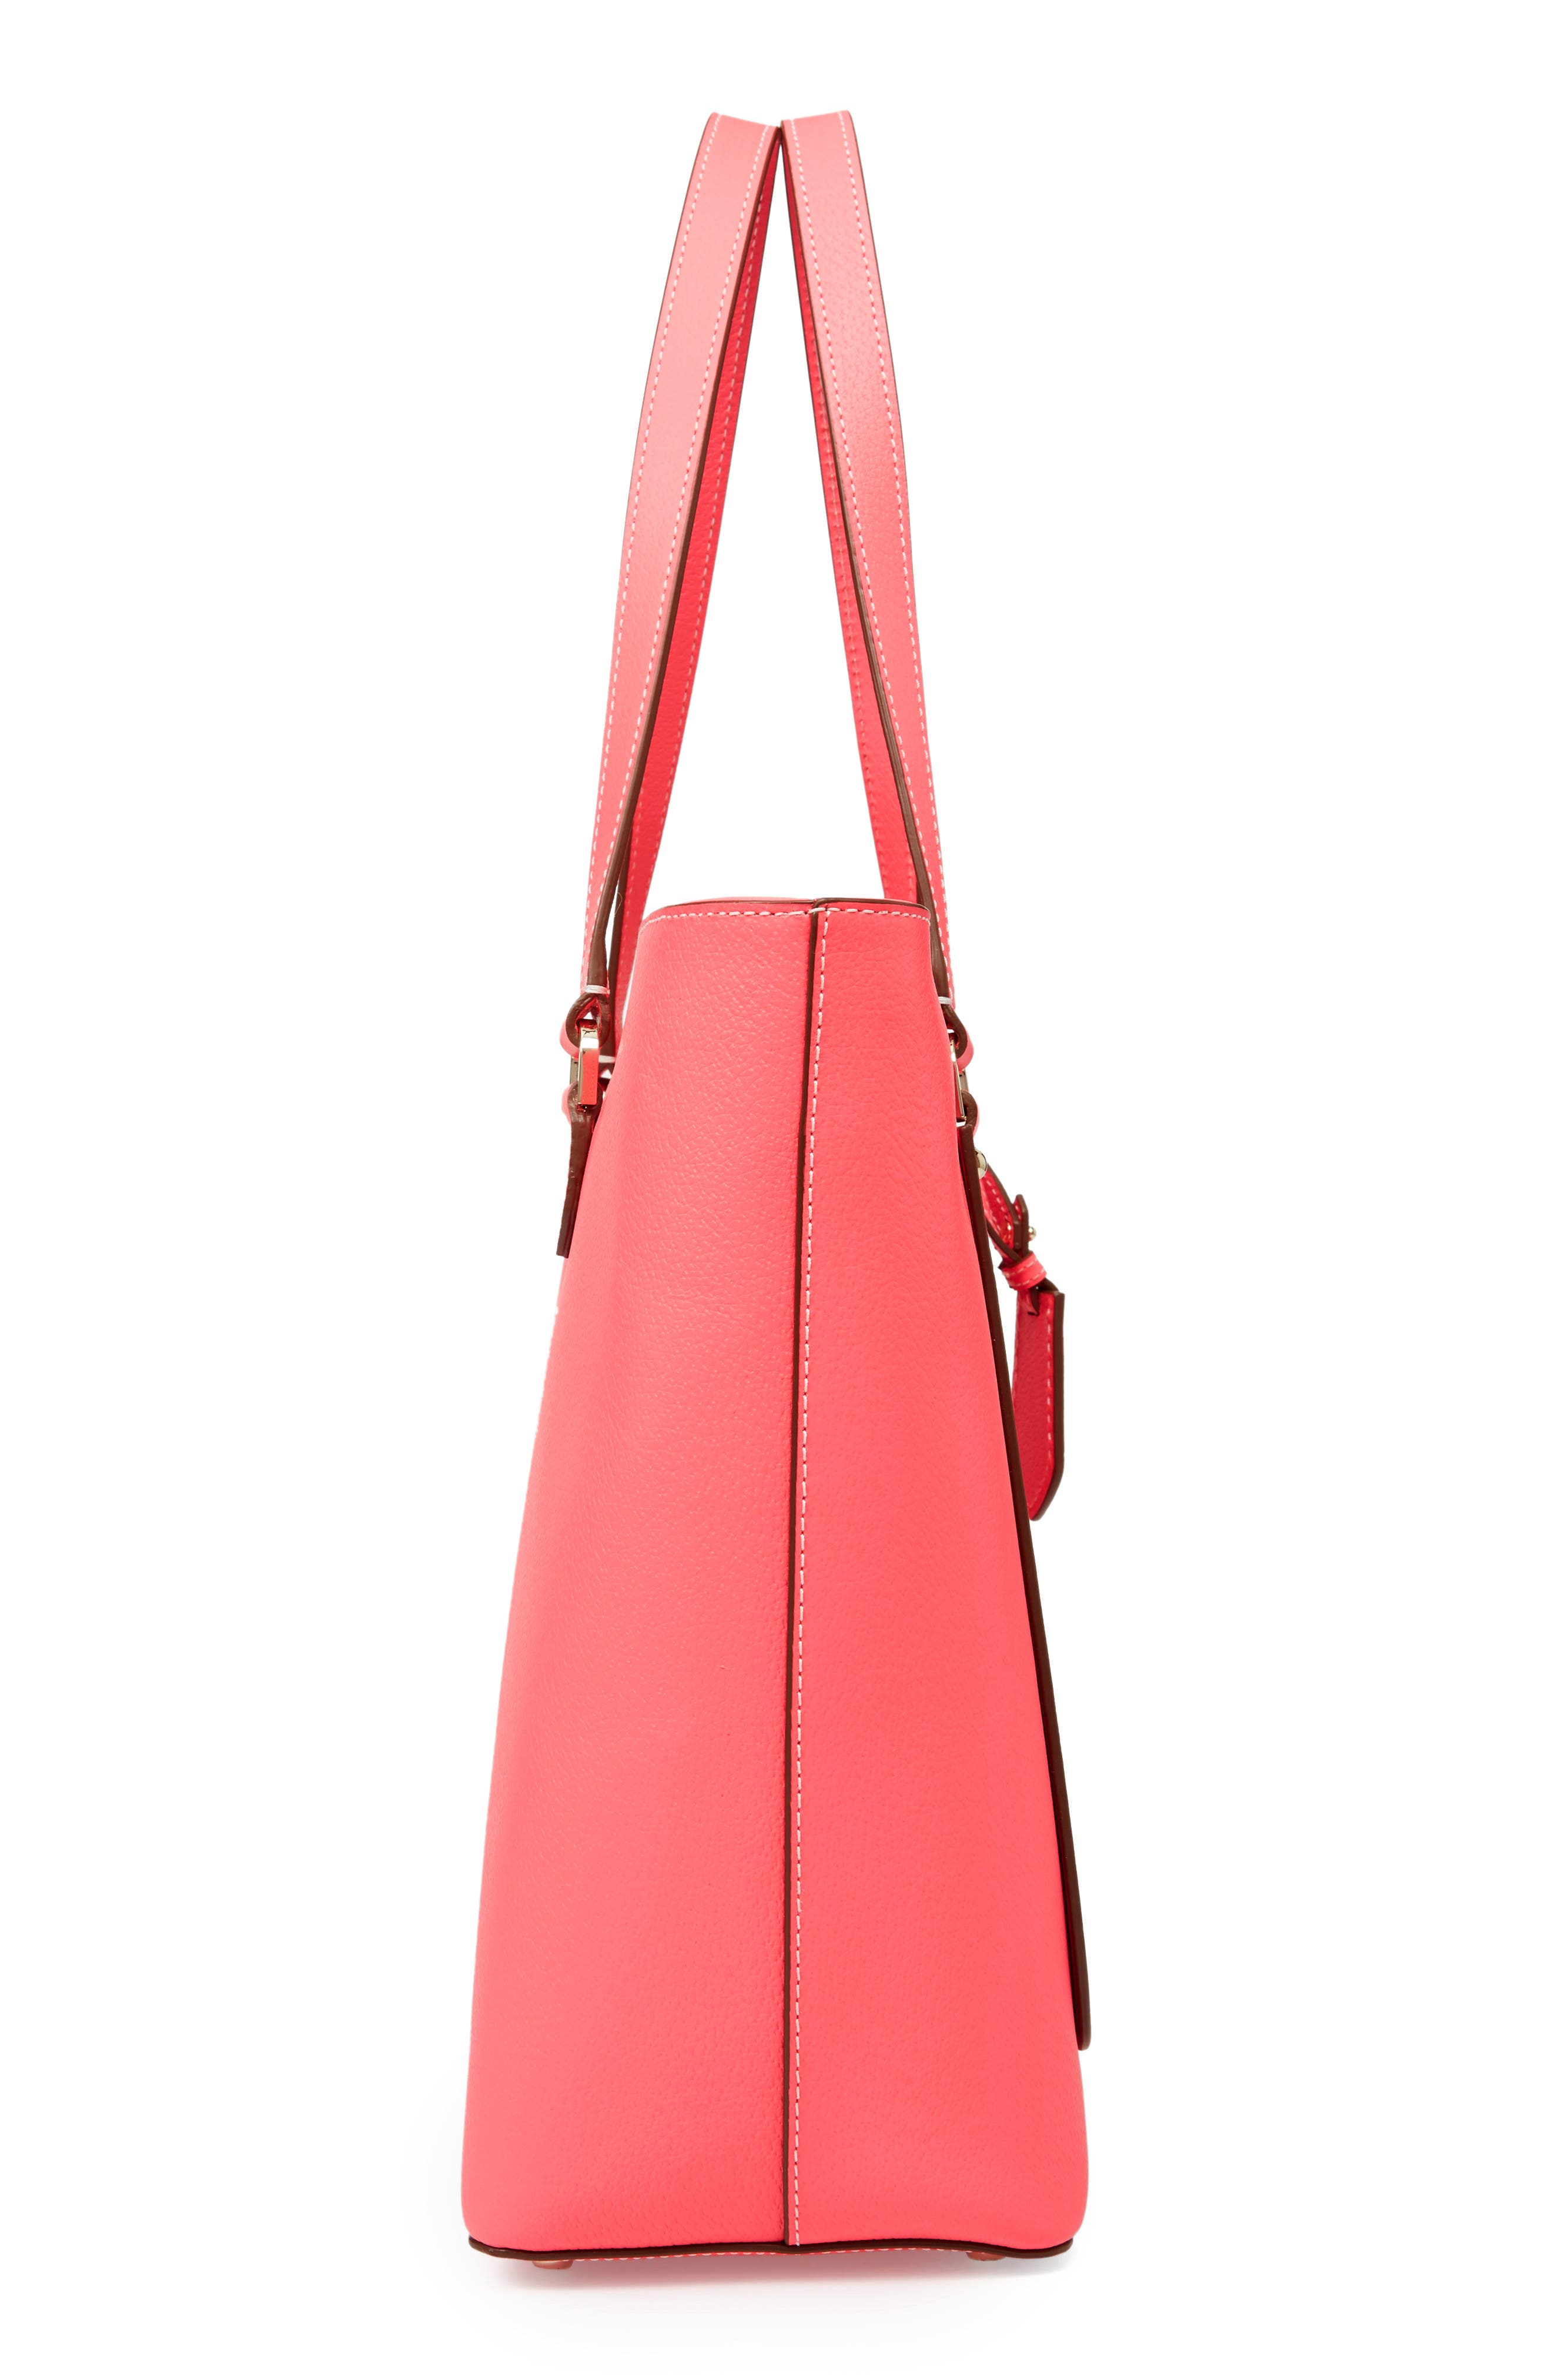 thompson street - kimberly leather tote,                             Alternate thumbnail 5, color,                             BRIGHT FLAMINGO